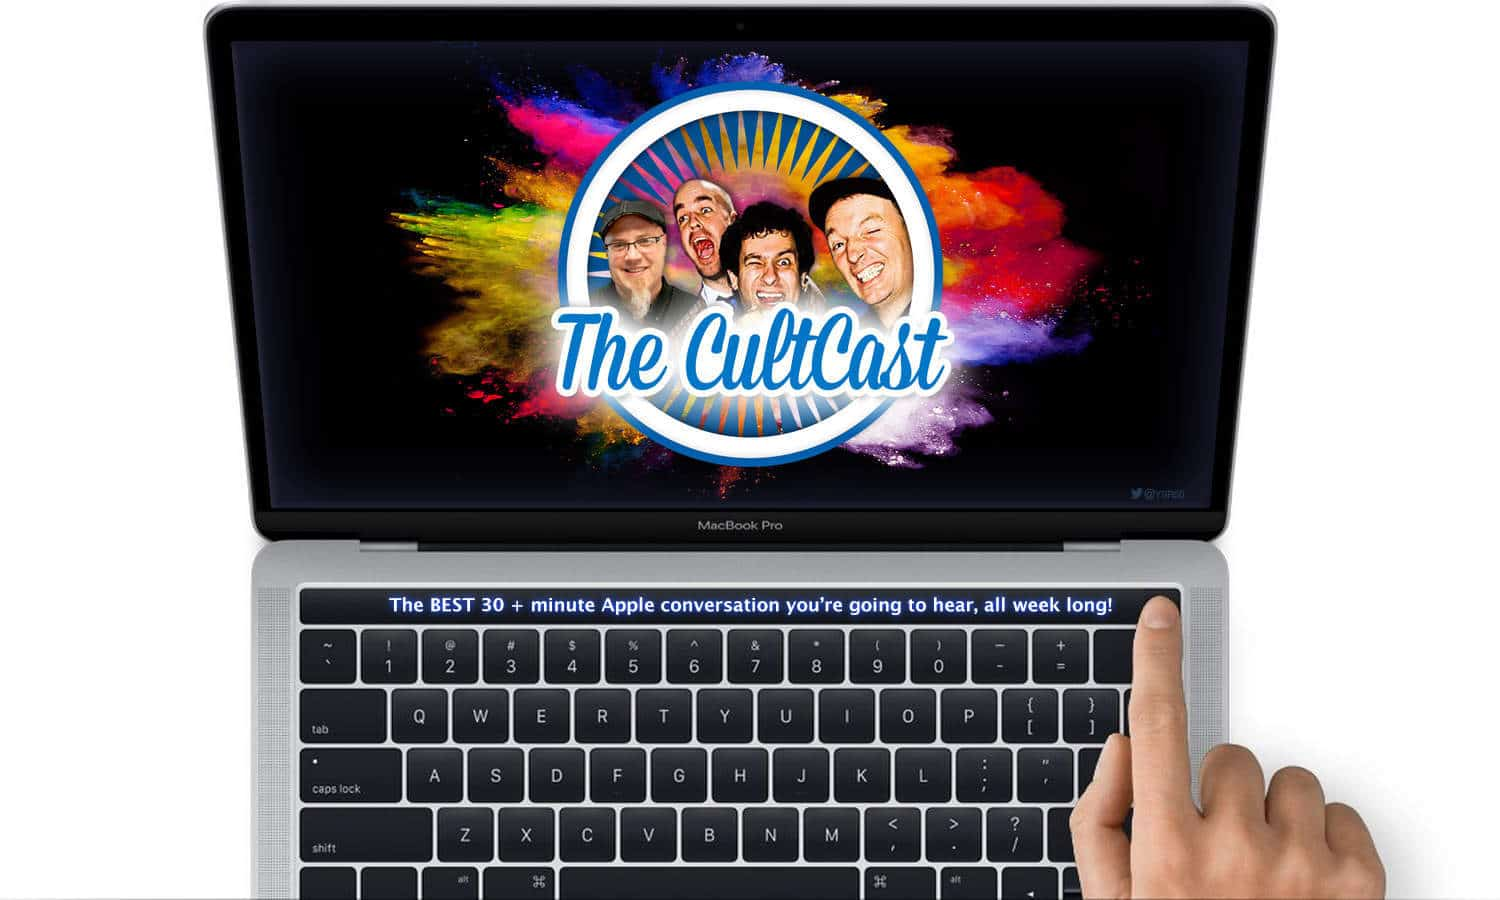 Journey to a Trillion, and a Look at Apple's Troubled History, on the CultCast